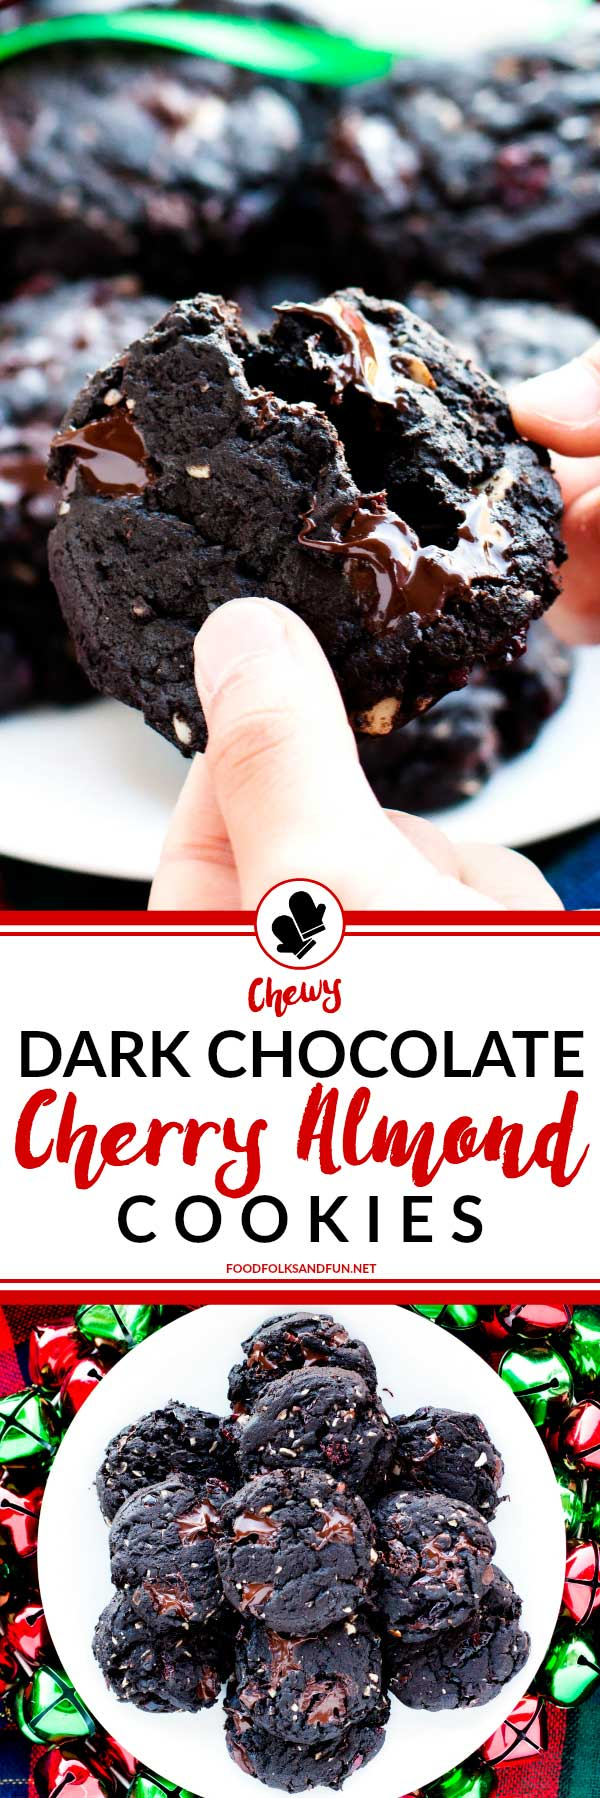 A collage of chewy Dark Chocolate Cherry Almond cookies with text overlay for Pinterest